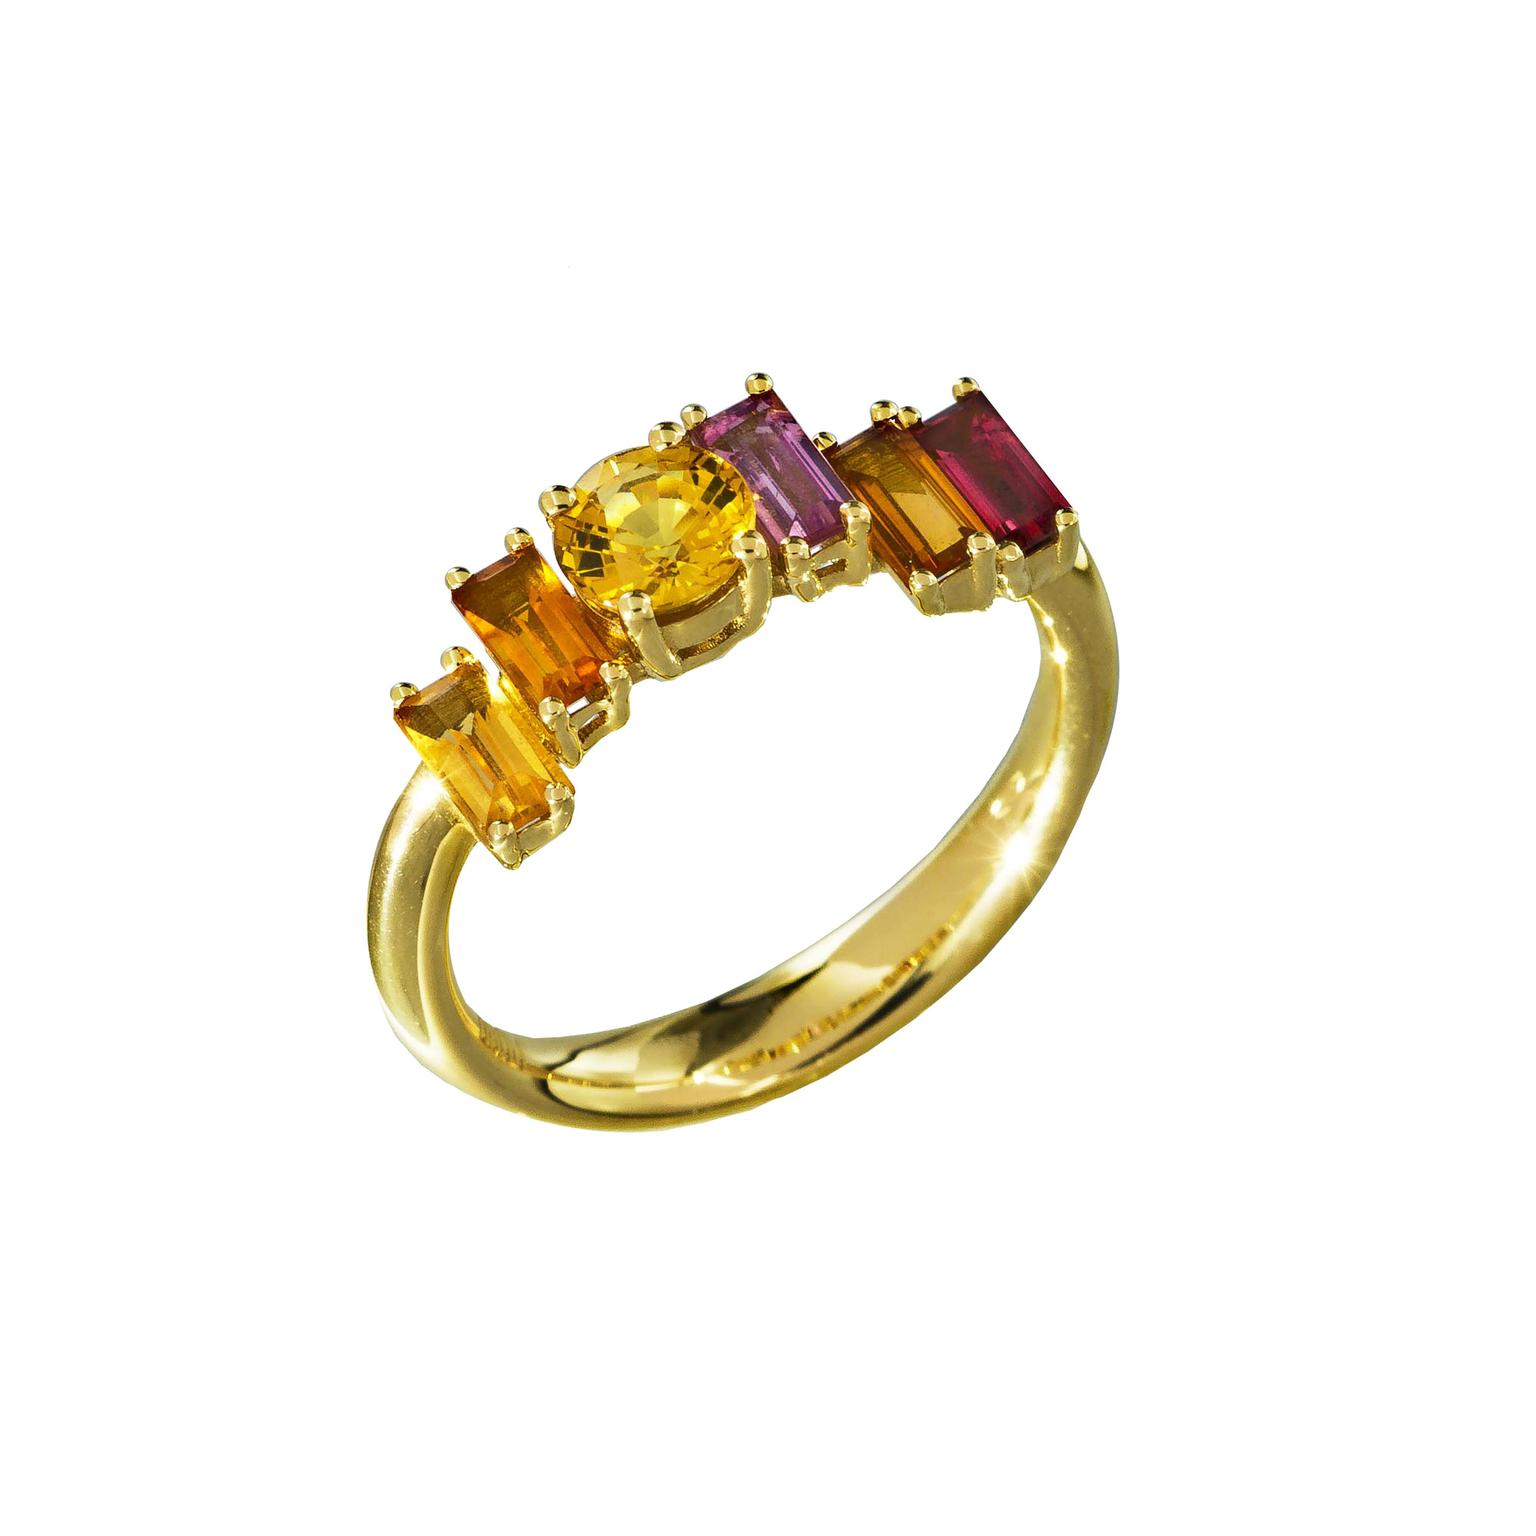 Daou Golden multicolour gemstone ring in yellow gold